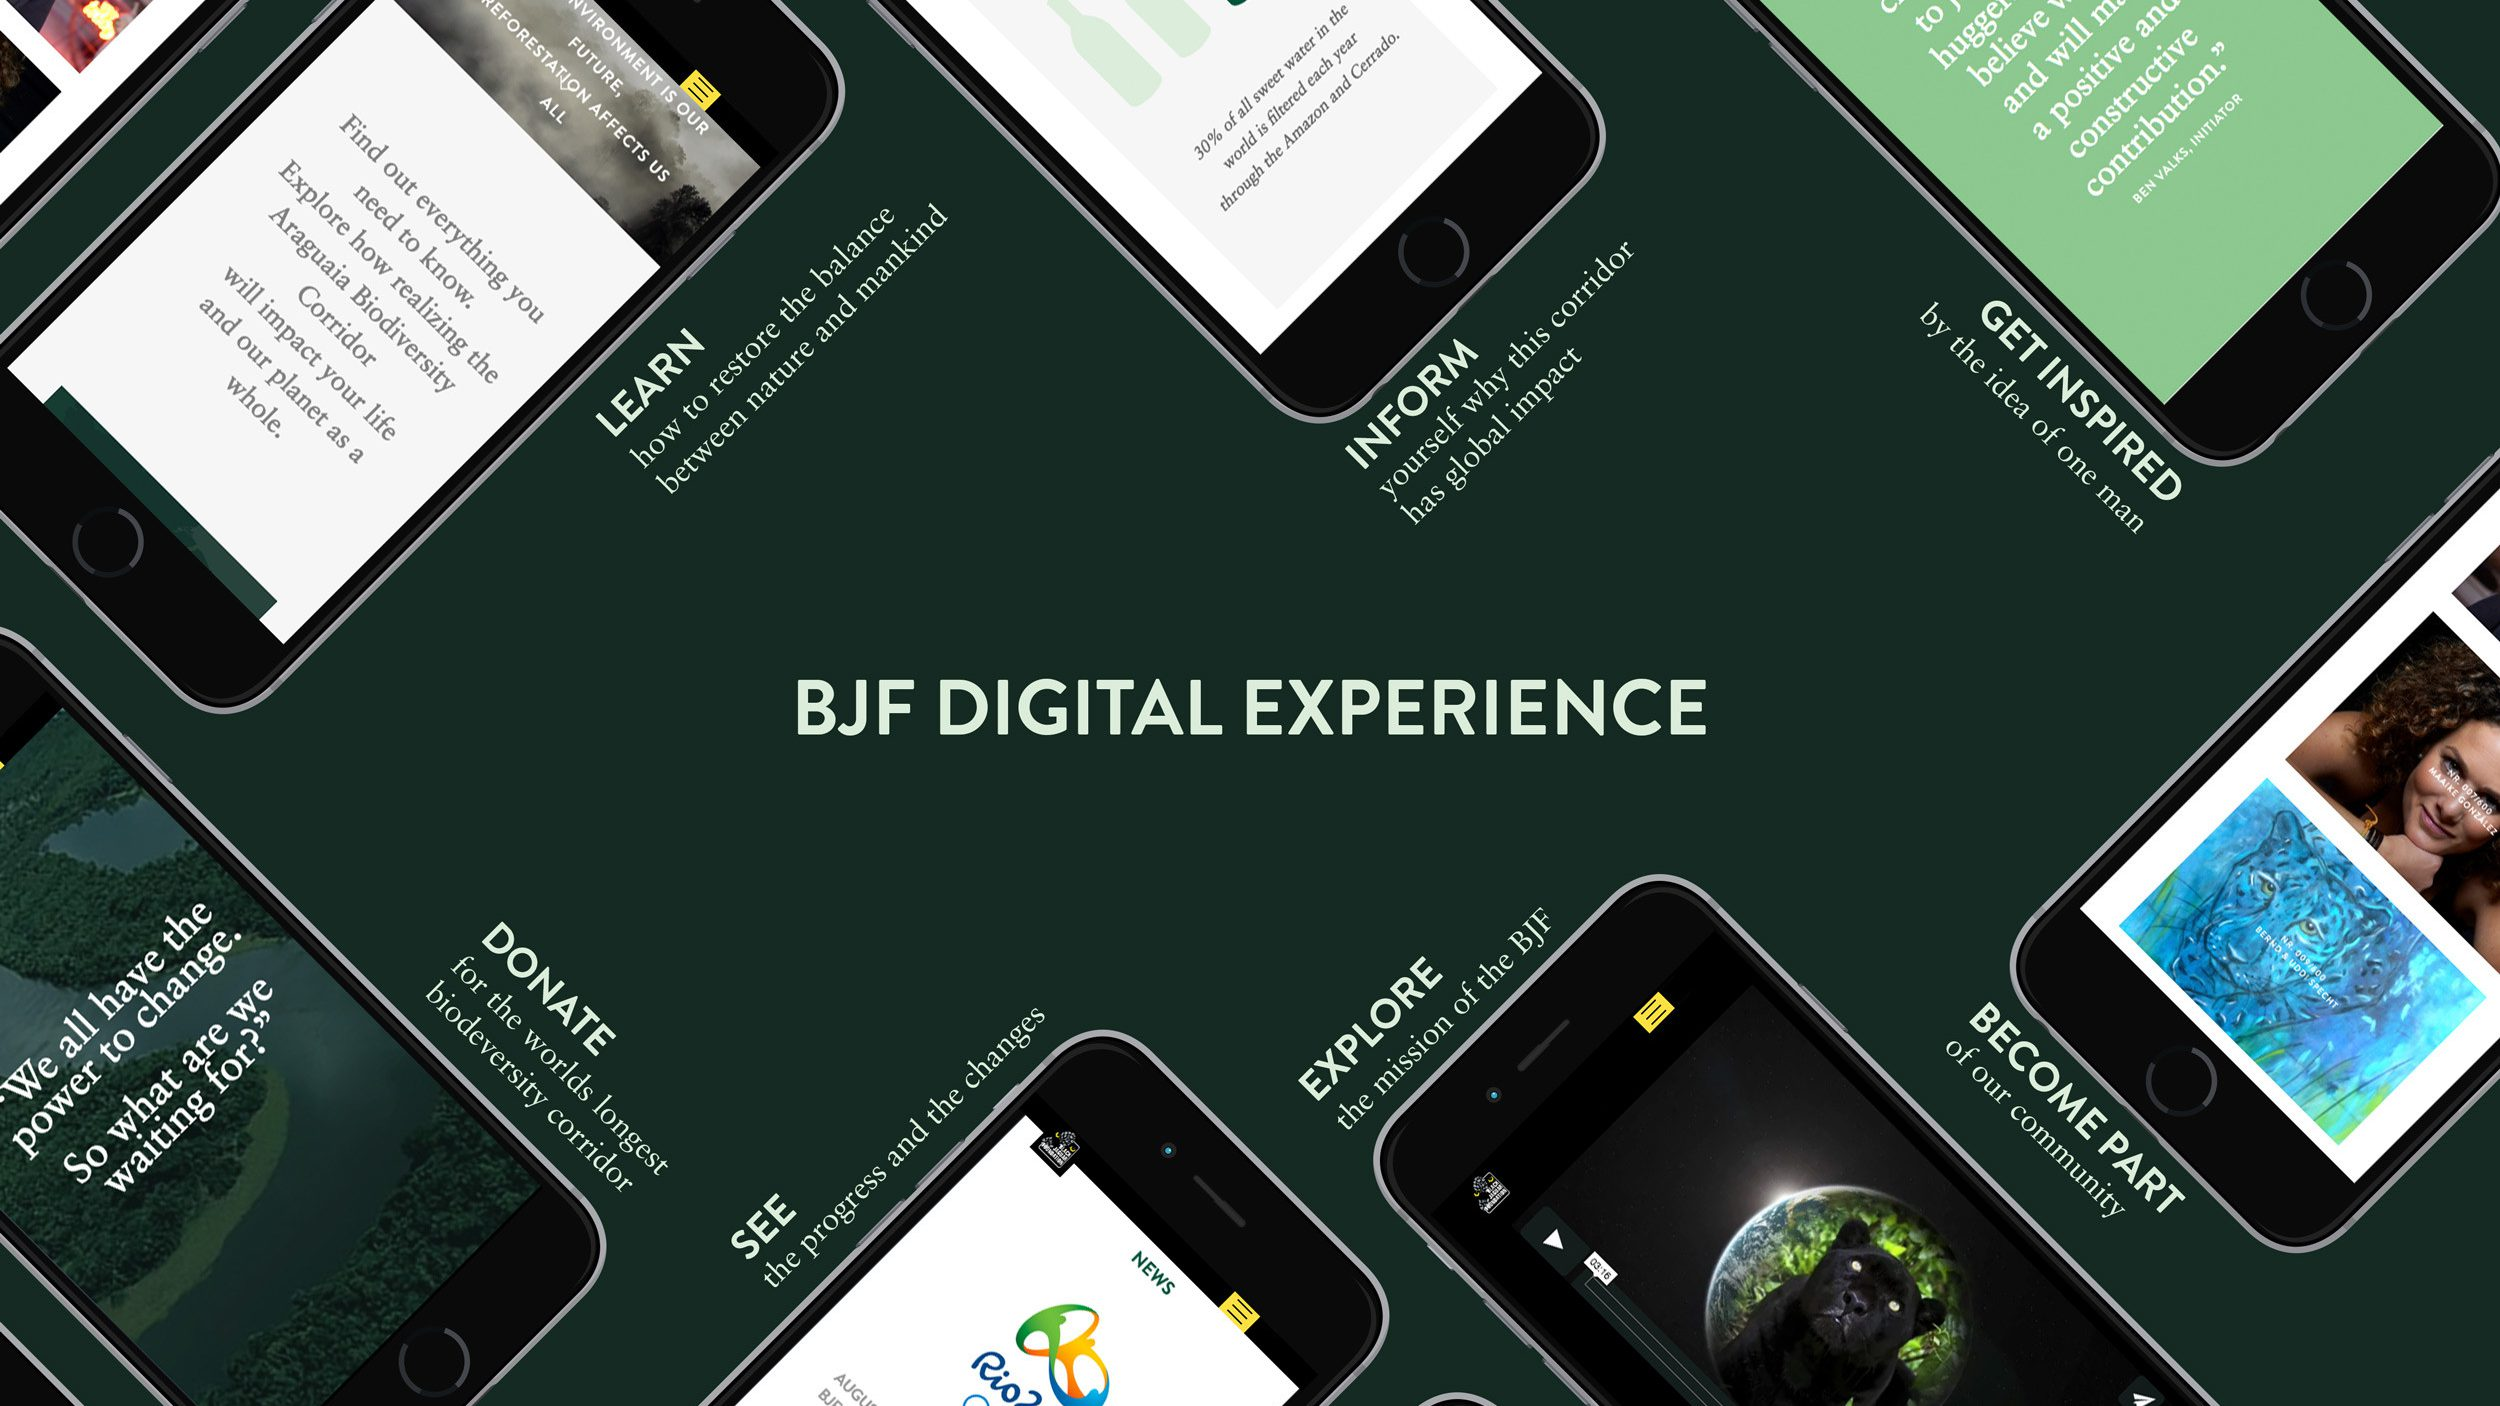 BJF, Black Jaguar Foundation, Digital Experience, Handy Uebersicht